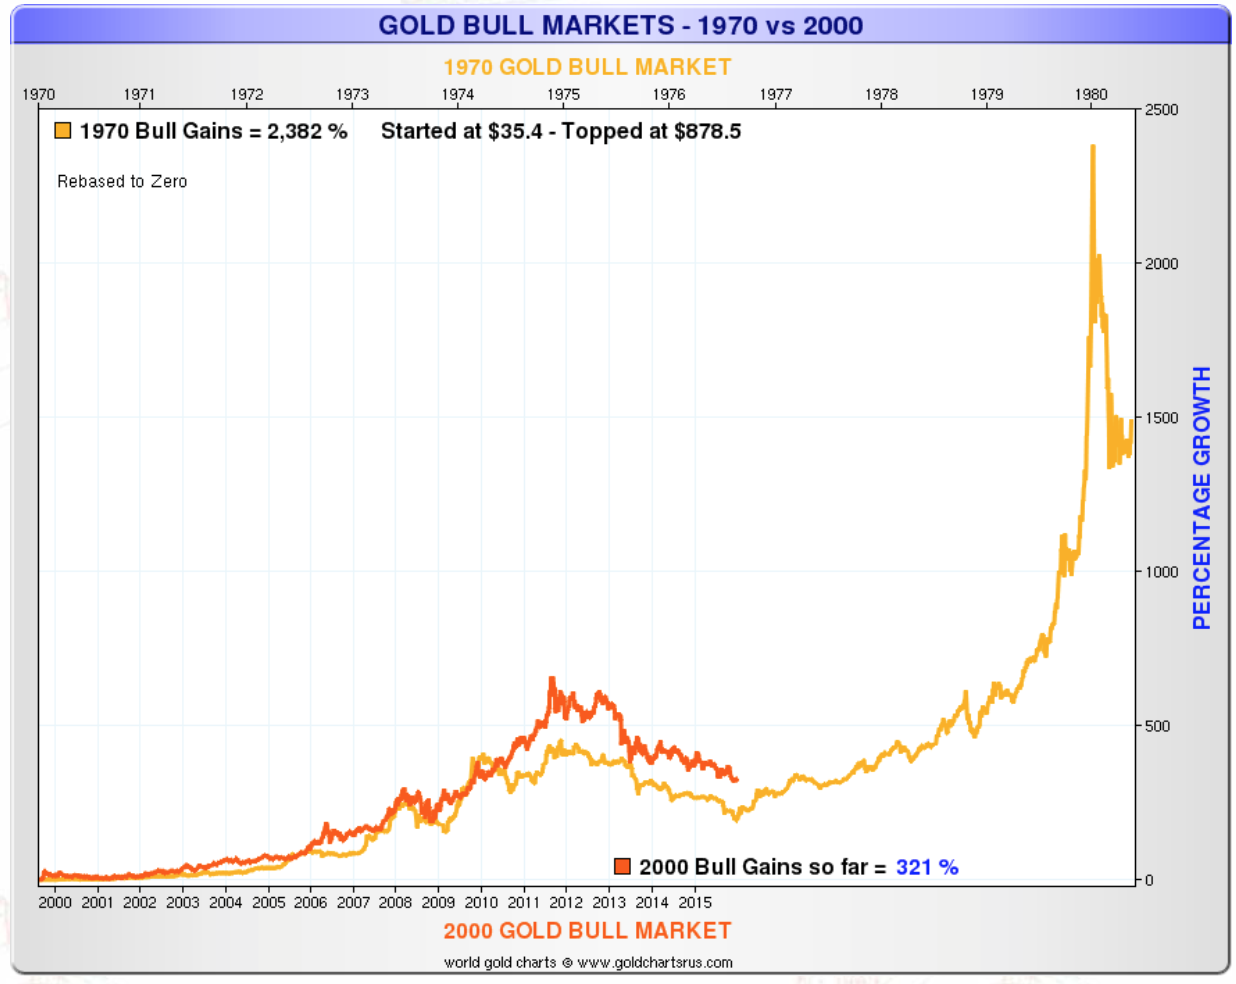 Gold bull market - 1970 vs 2000